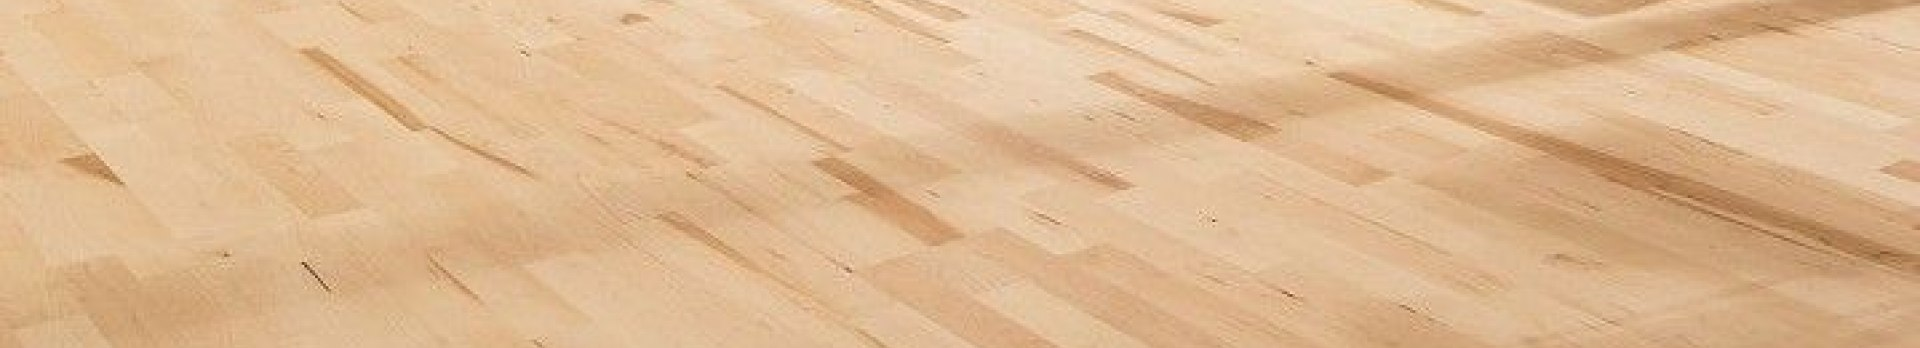 Parquet Flooring In Dubai